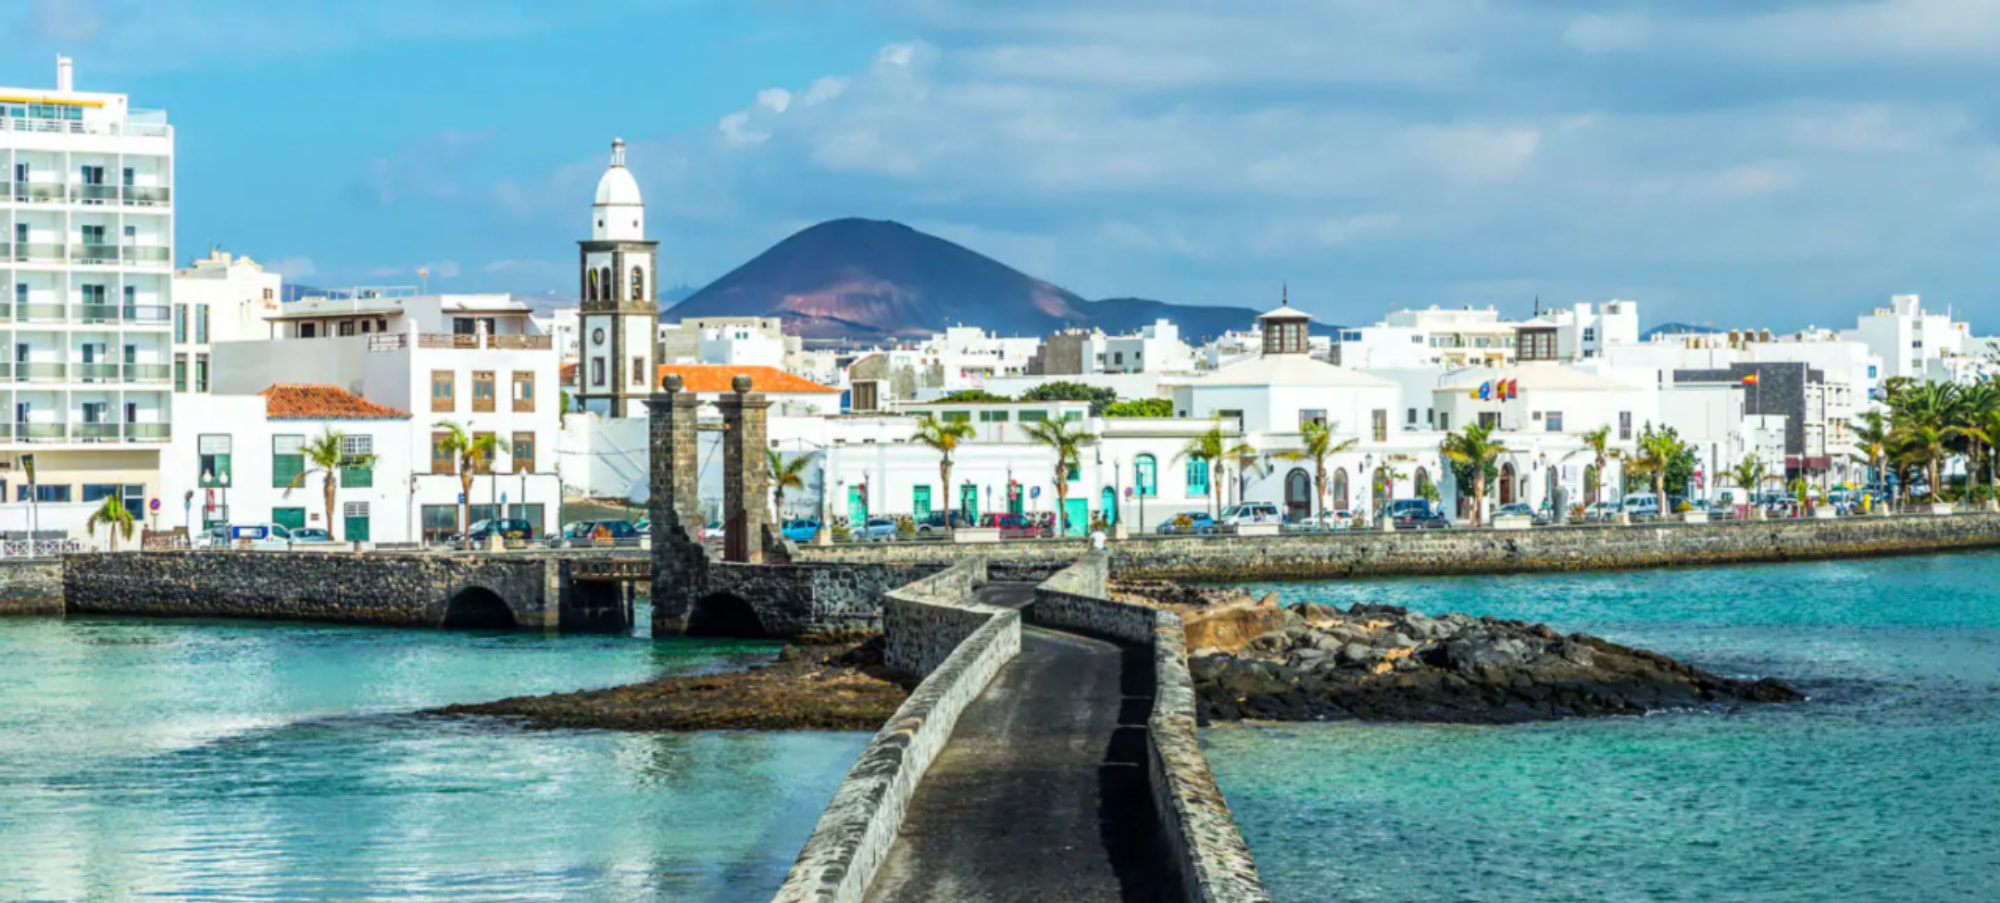 Getting to Lanzarote, Spain